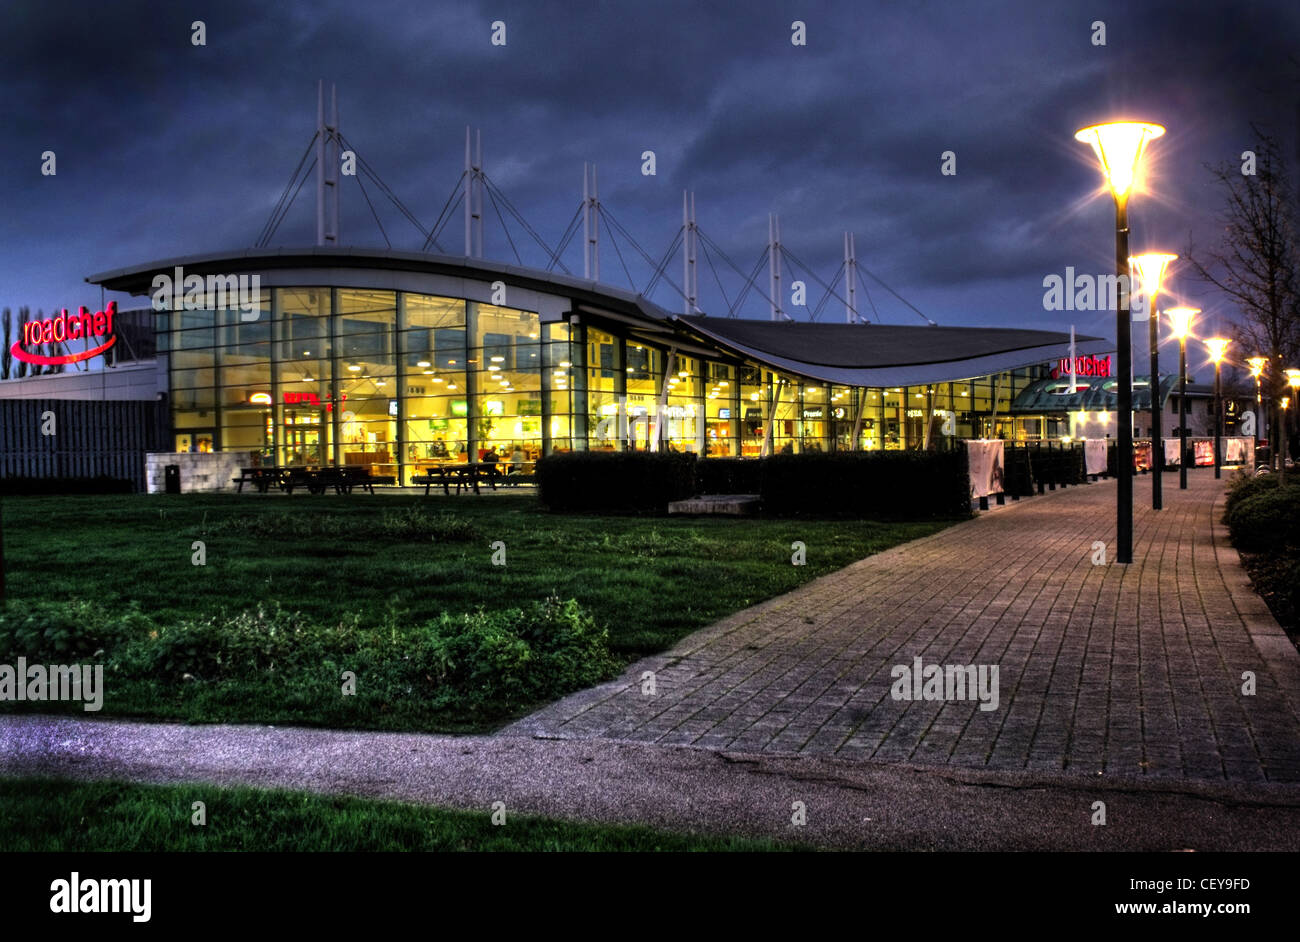 Dusk at Norton Canes Service Area M6 Toll Motorway - Night Shot - Stock Image